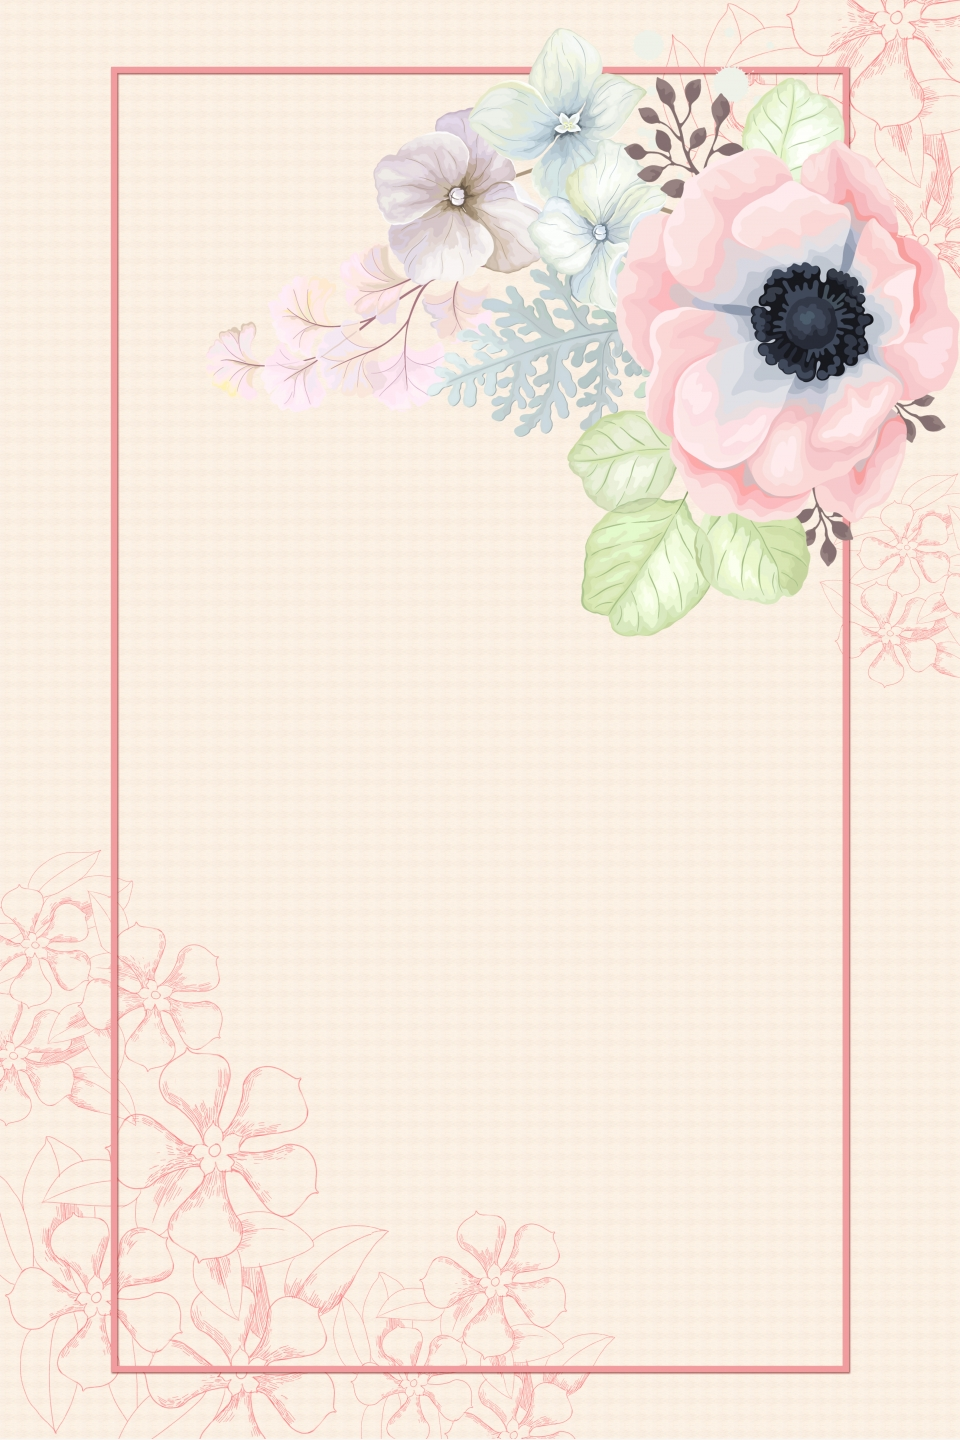 Small Fresh Pattern Wedding Invitation Background Material Fresh Pattern Wedding Background Image For Free Download